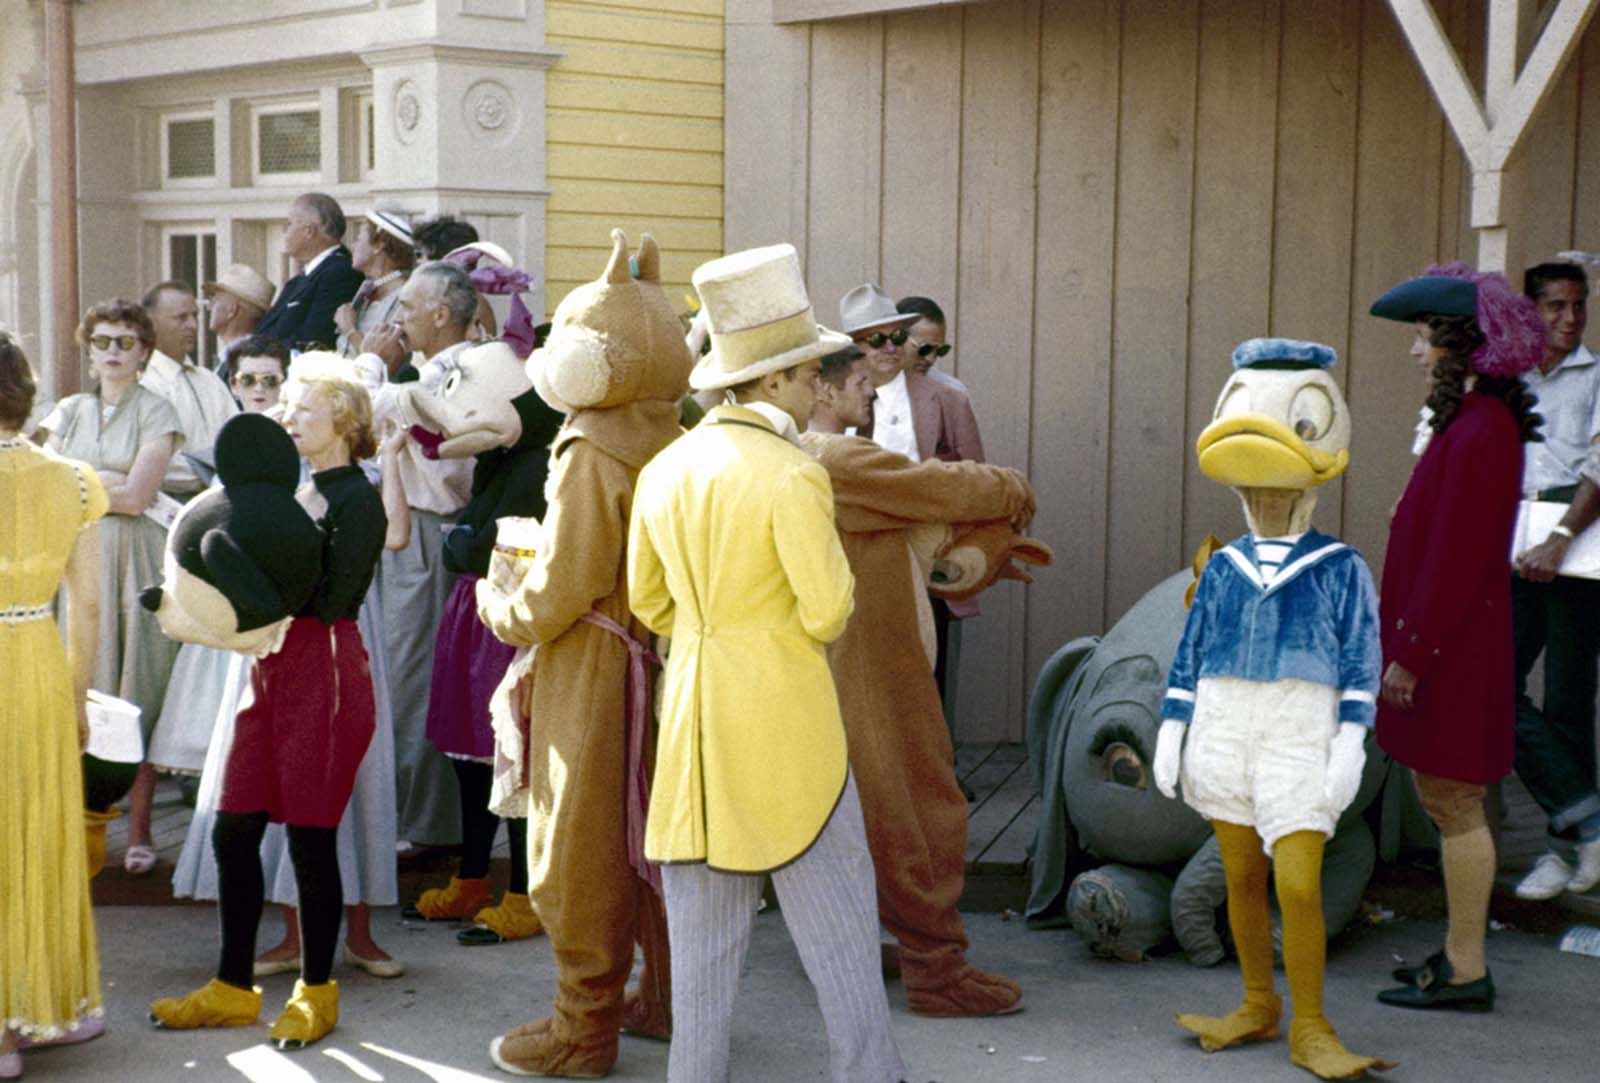 Parade participants and costumed Disney characters ready themselves for the televised grand opening of Disneyland on July 17, 1955.